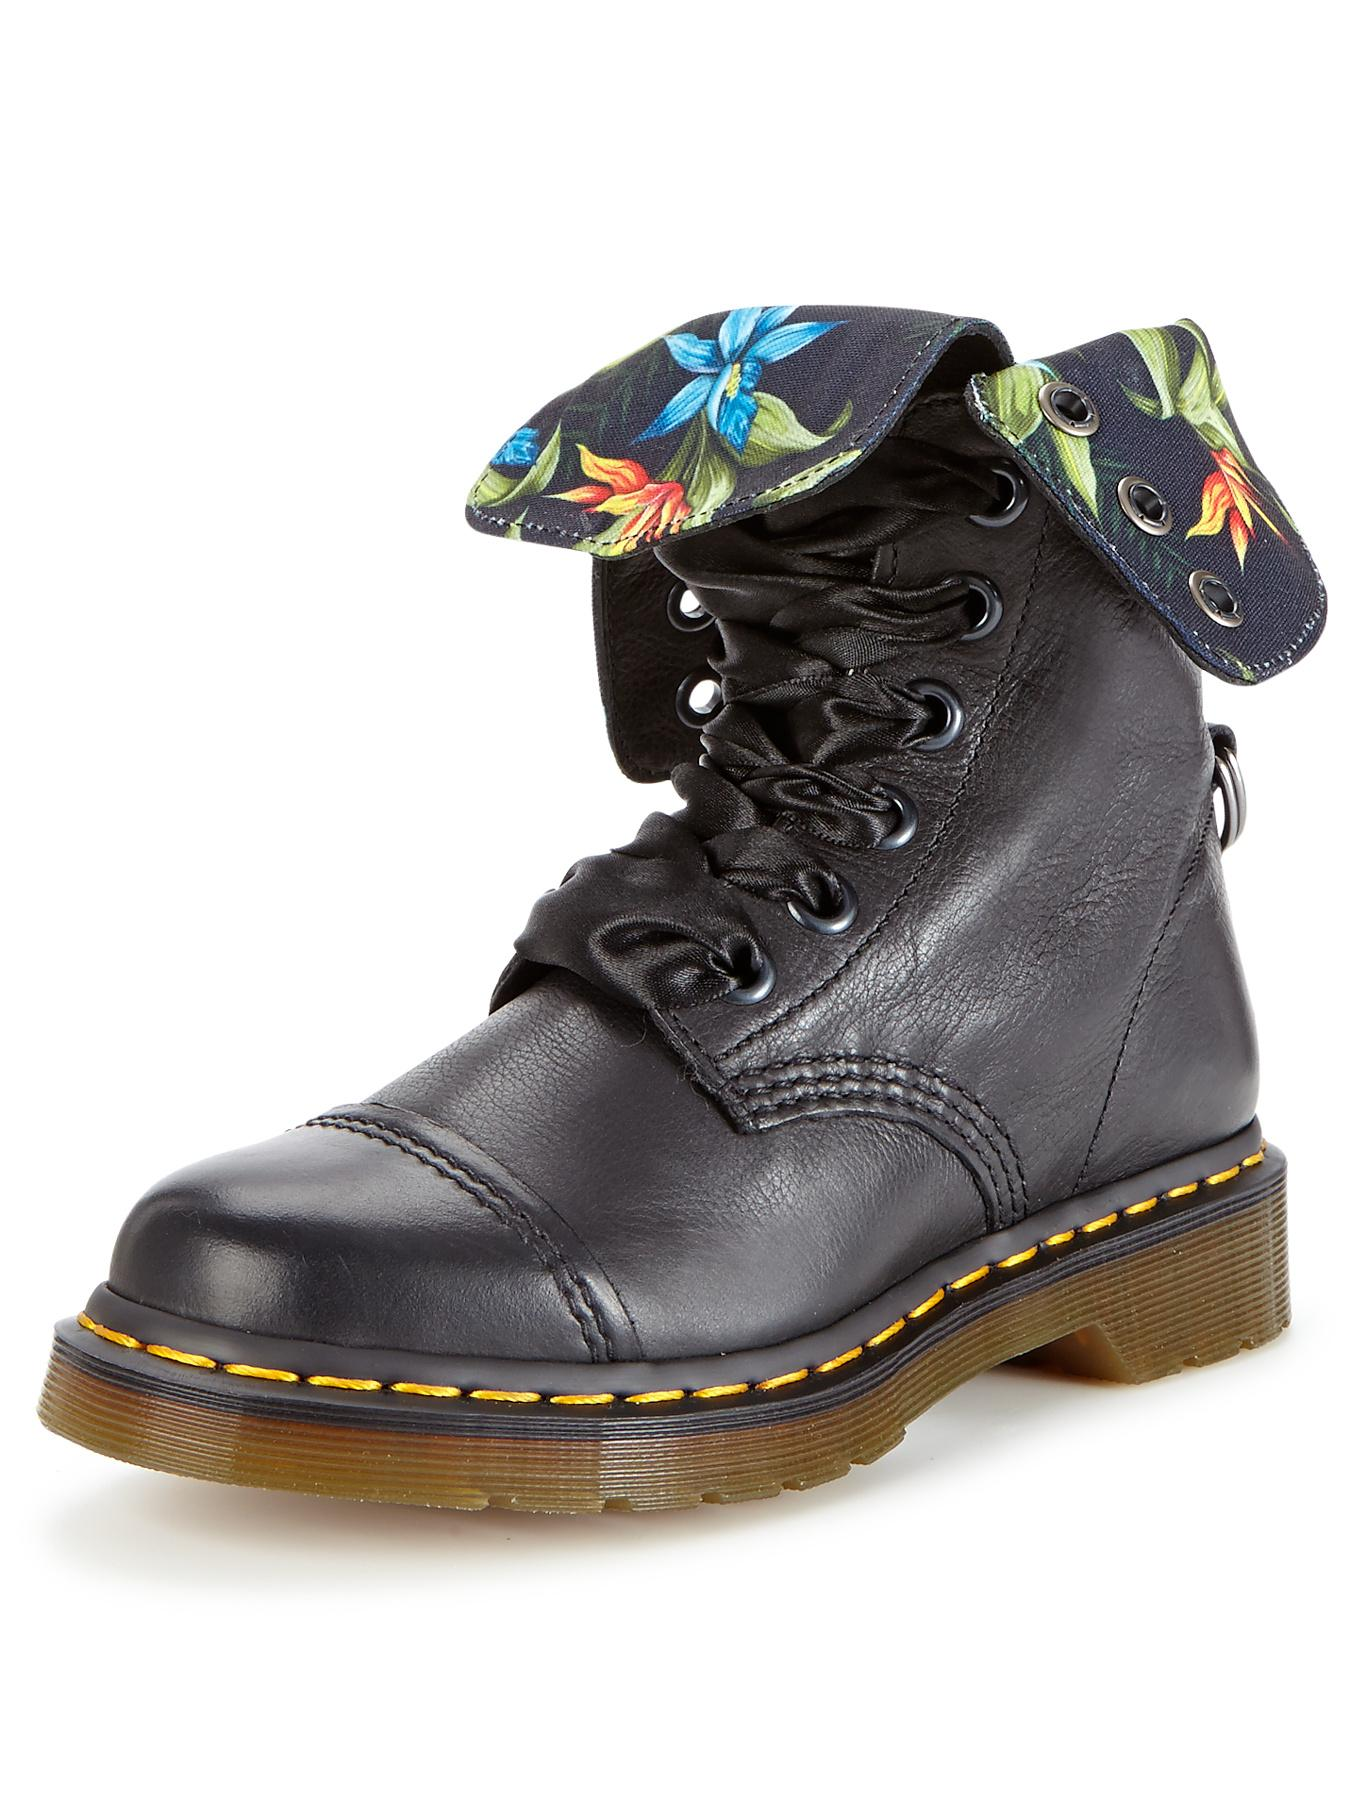 Dr Martens Aimilita Fold Up or Down Boots - Black, Black at Very, from Littlewoods